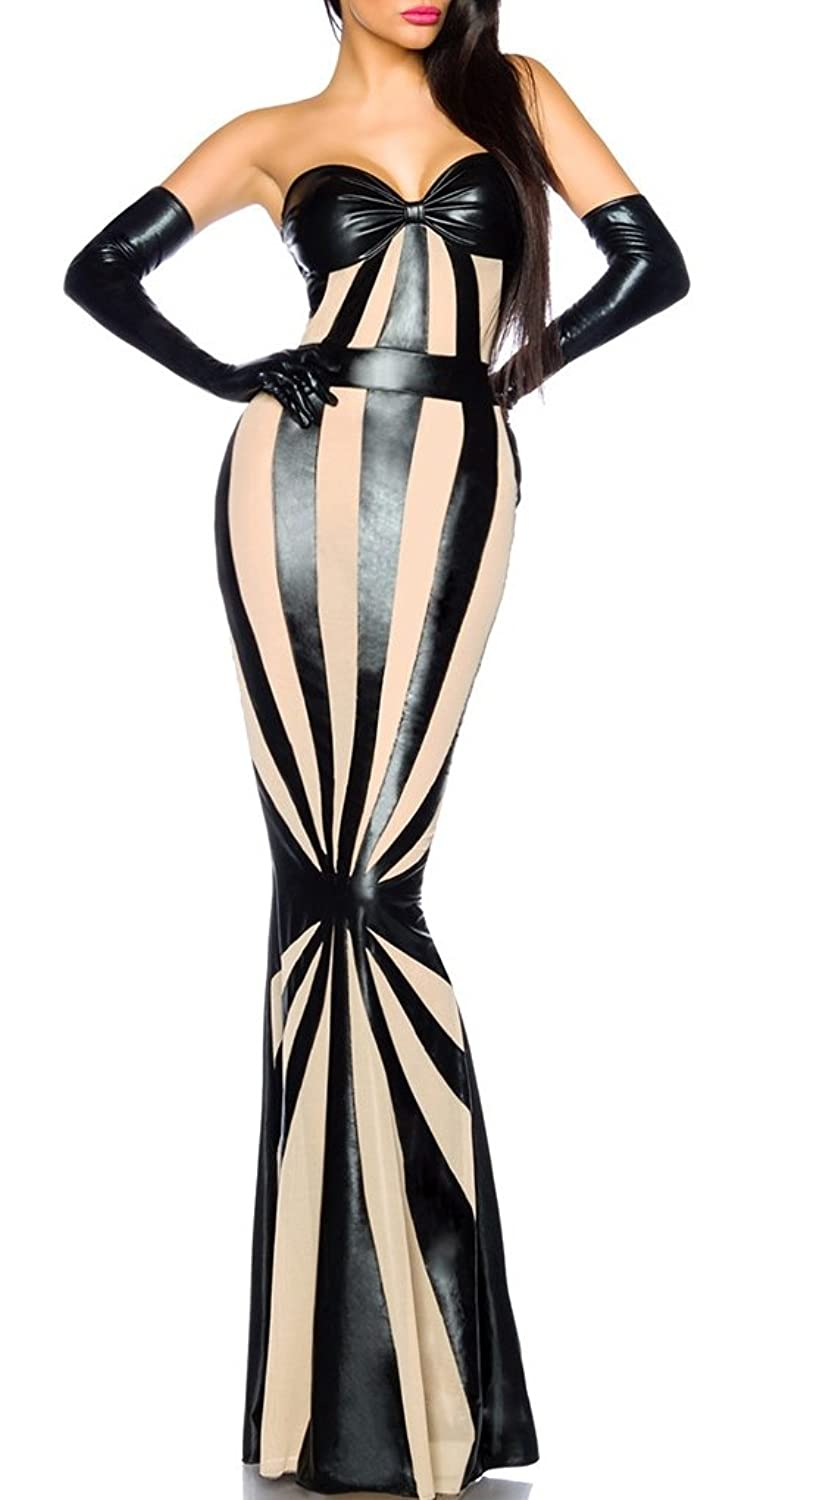 Black Wet Look Dress Long With White Mesh Striped Pencil Dress